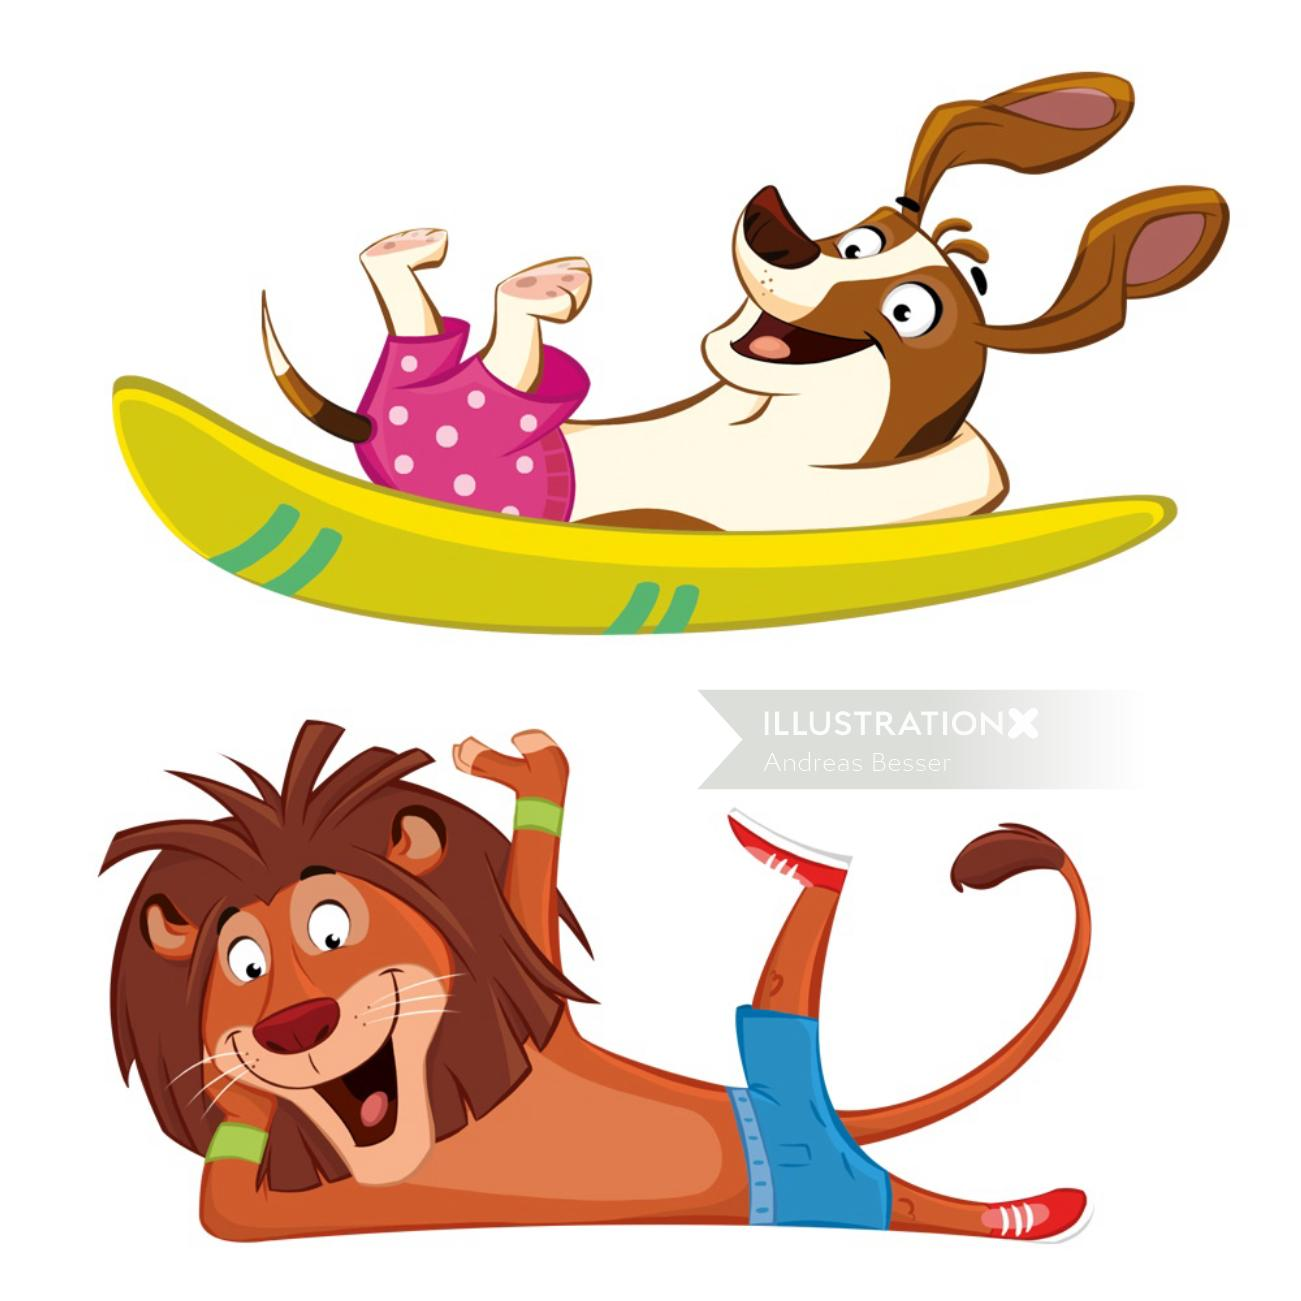 Animals character design by cartoon illustrator